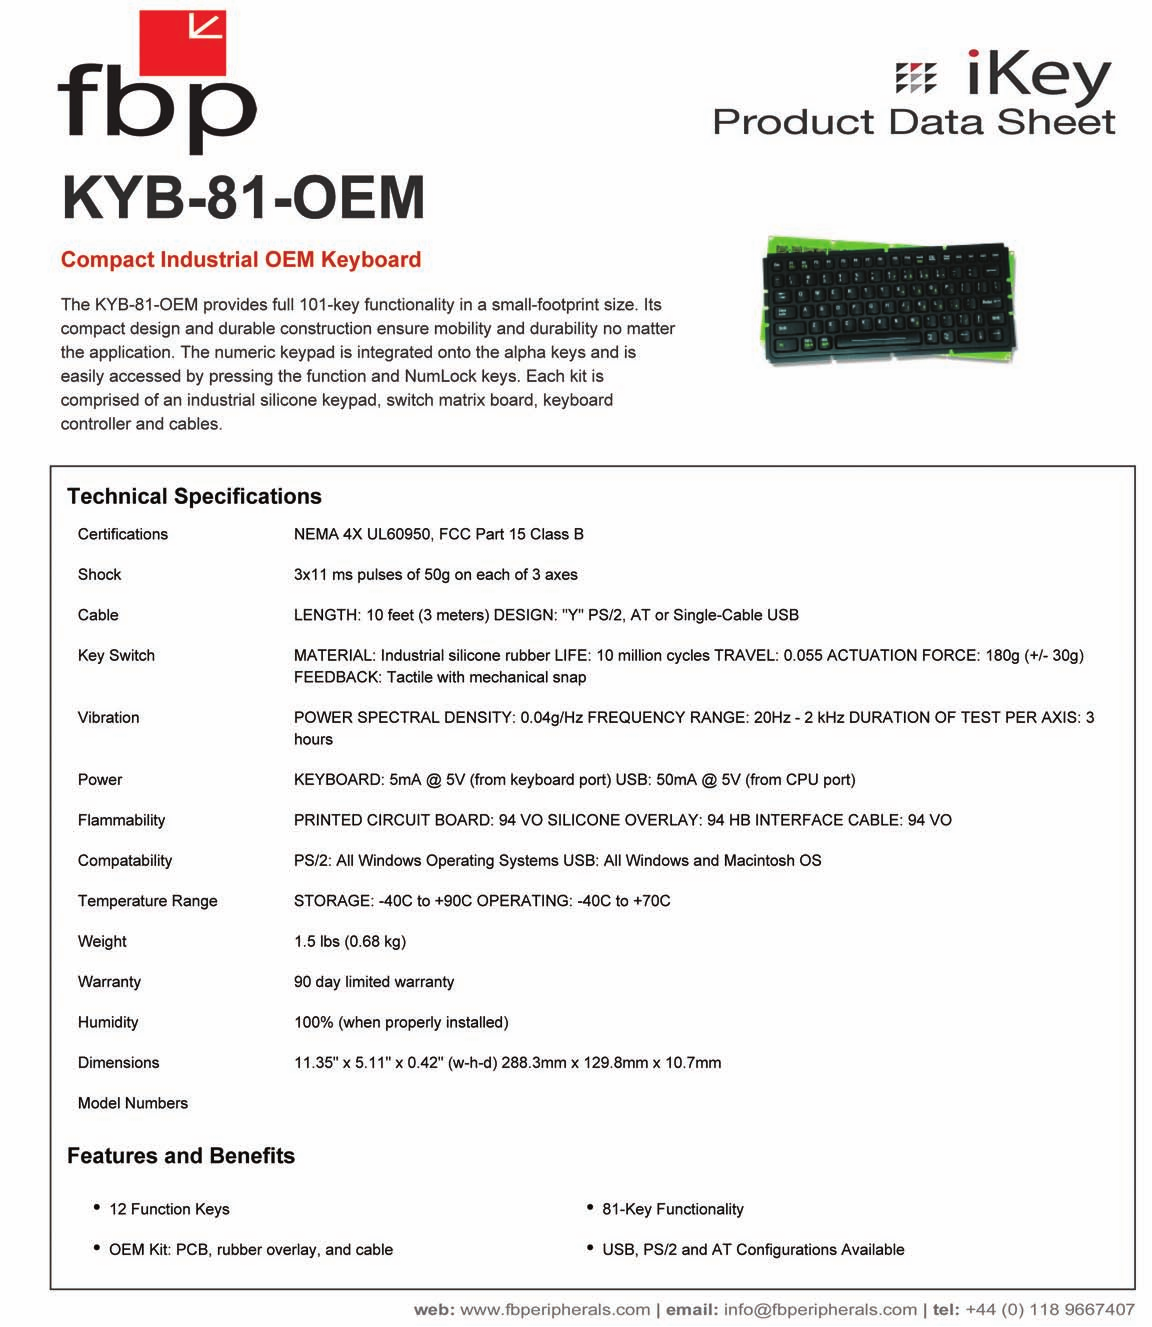 pdf for iKey Keyboard KYB-81-OEM manual